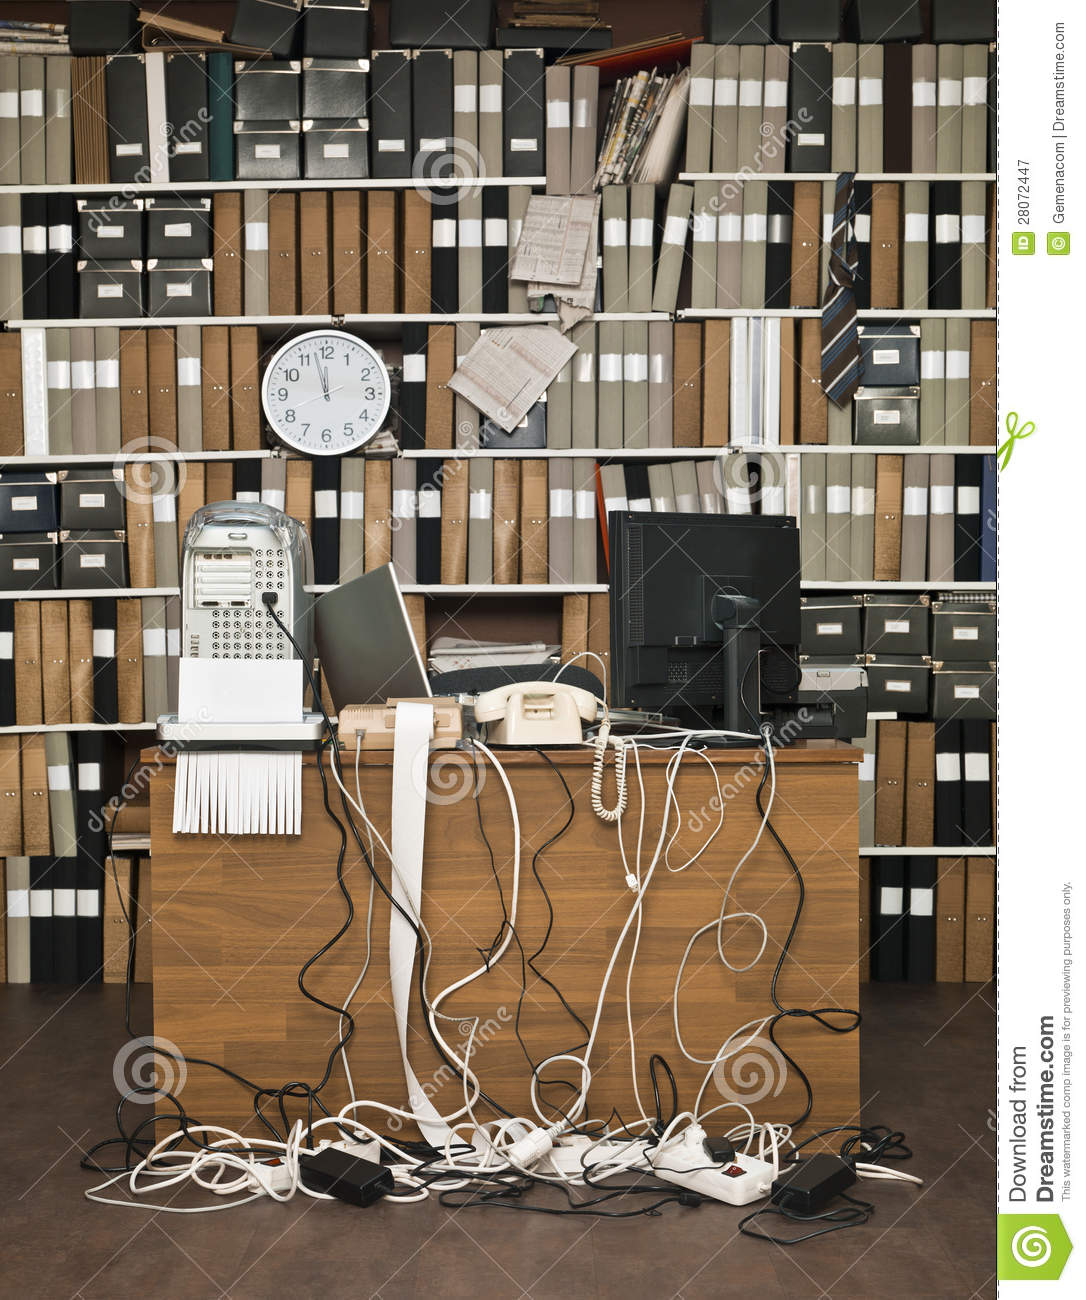 Messy Office: Messy Office Royalty Free Stock Photography